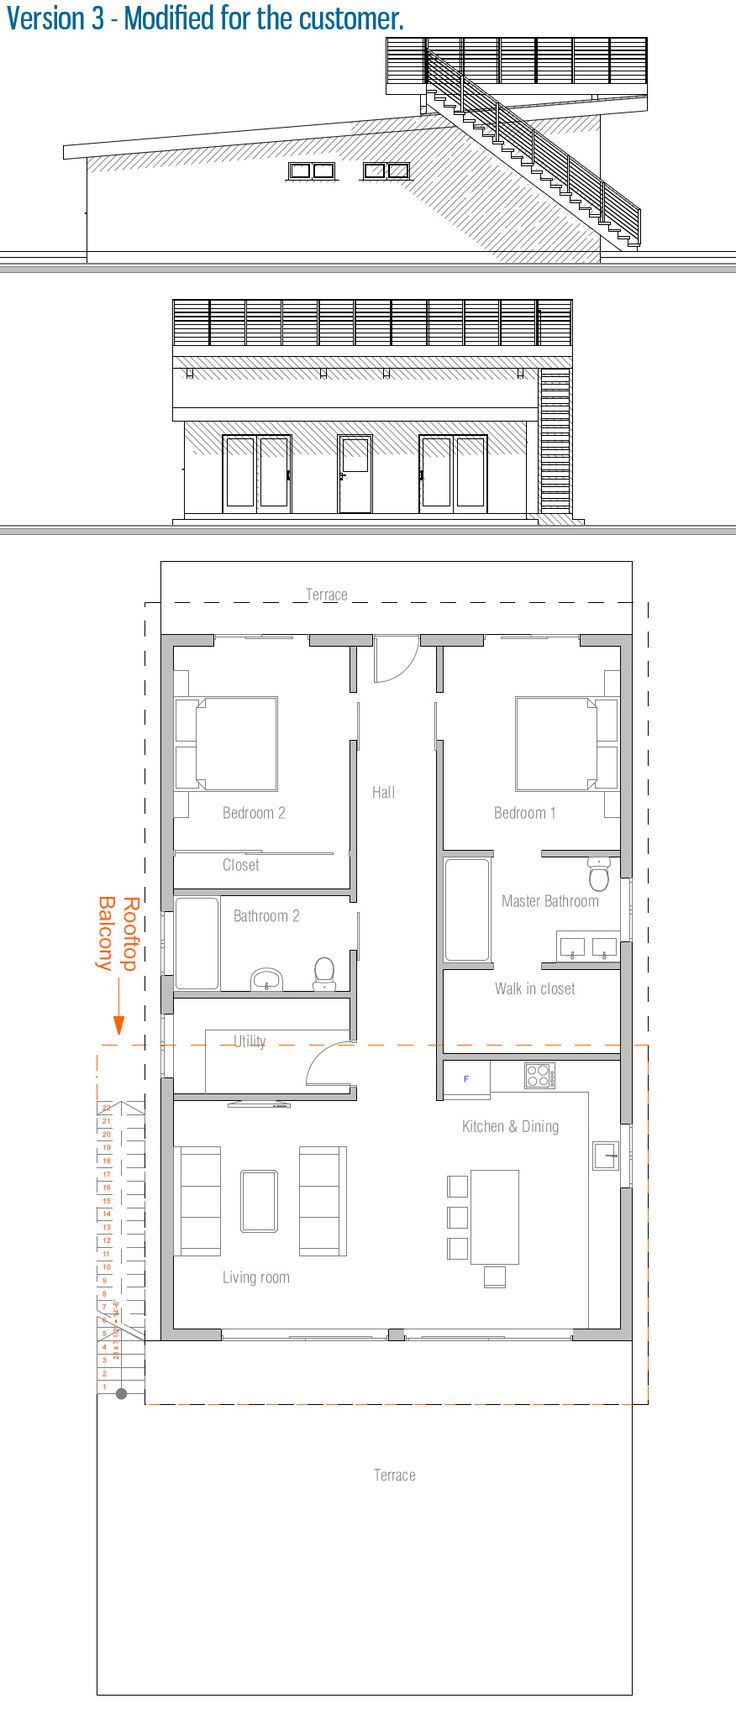 Customer House Plan